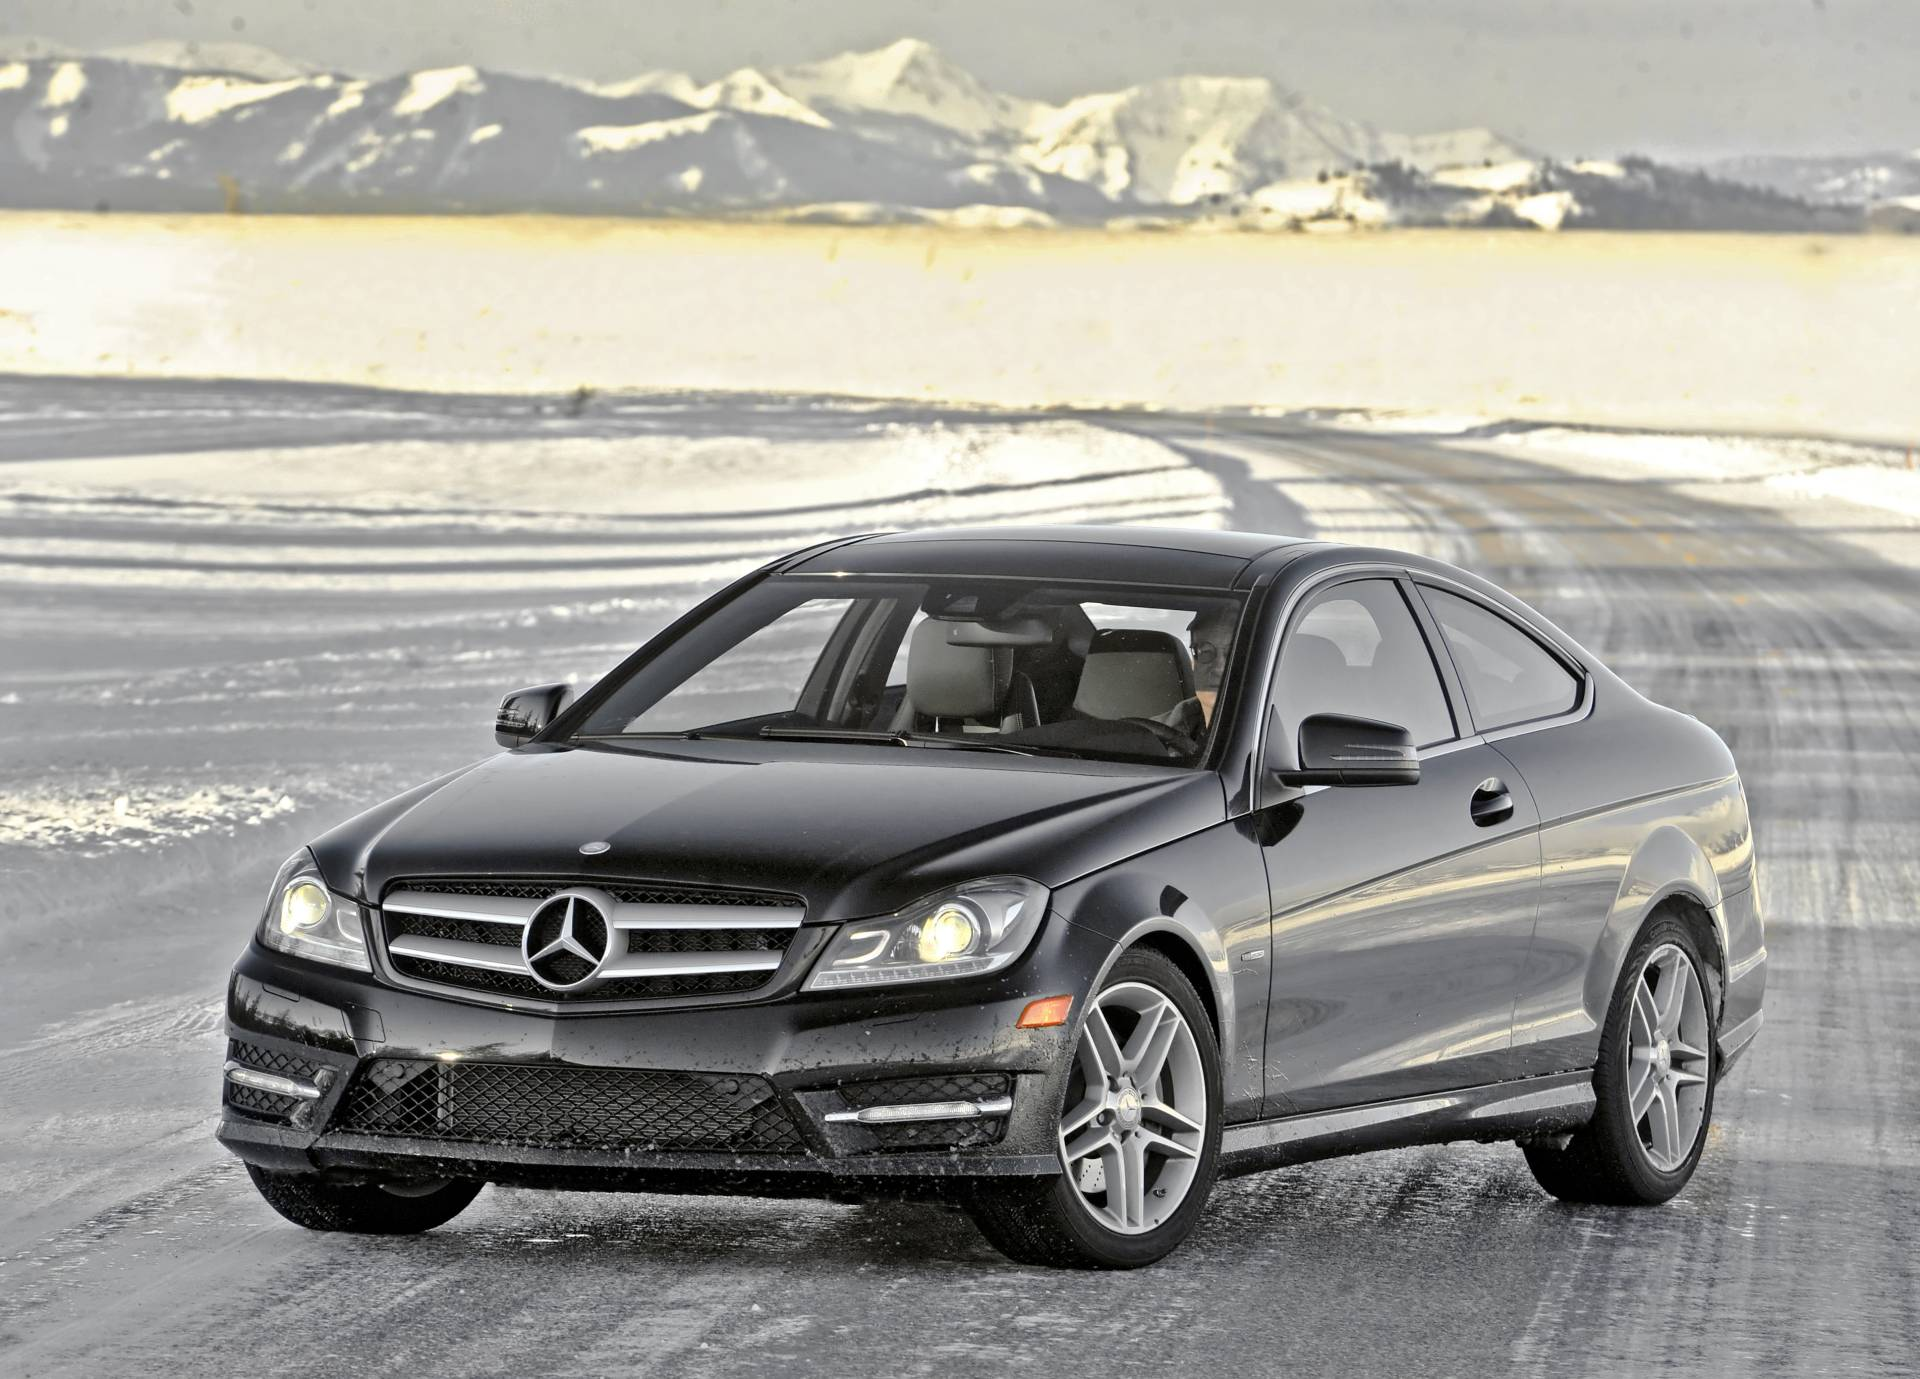 2013 mercedes benz c class for Mercedes benz 2013 c300 price